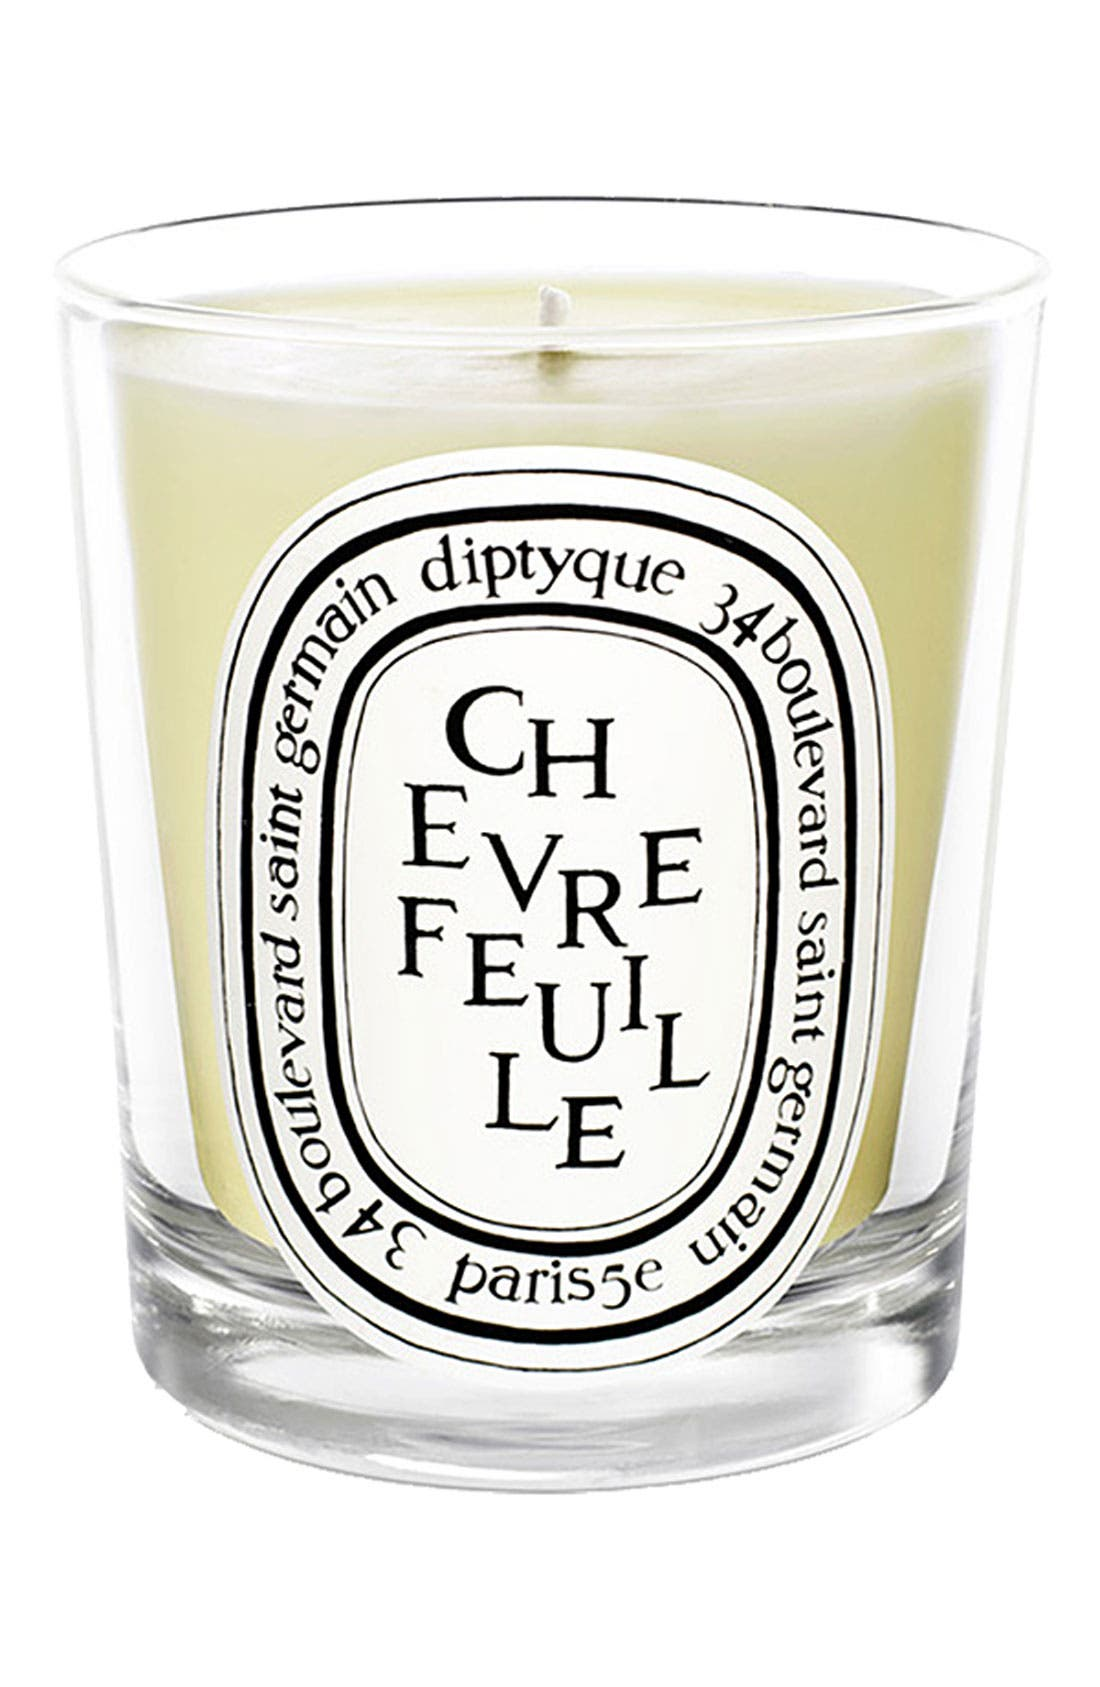 Alternate Image 1 Selected - diptyque 'Chevrefeuille' Scented Candle